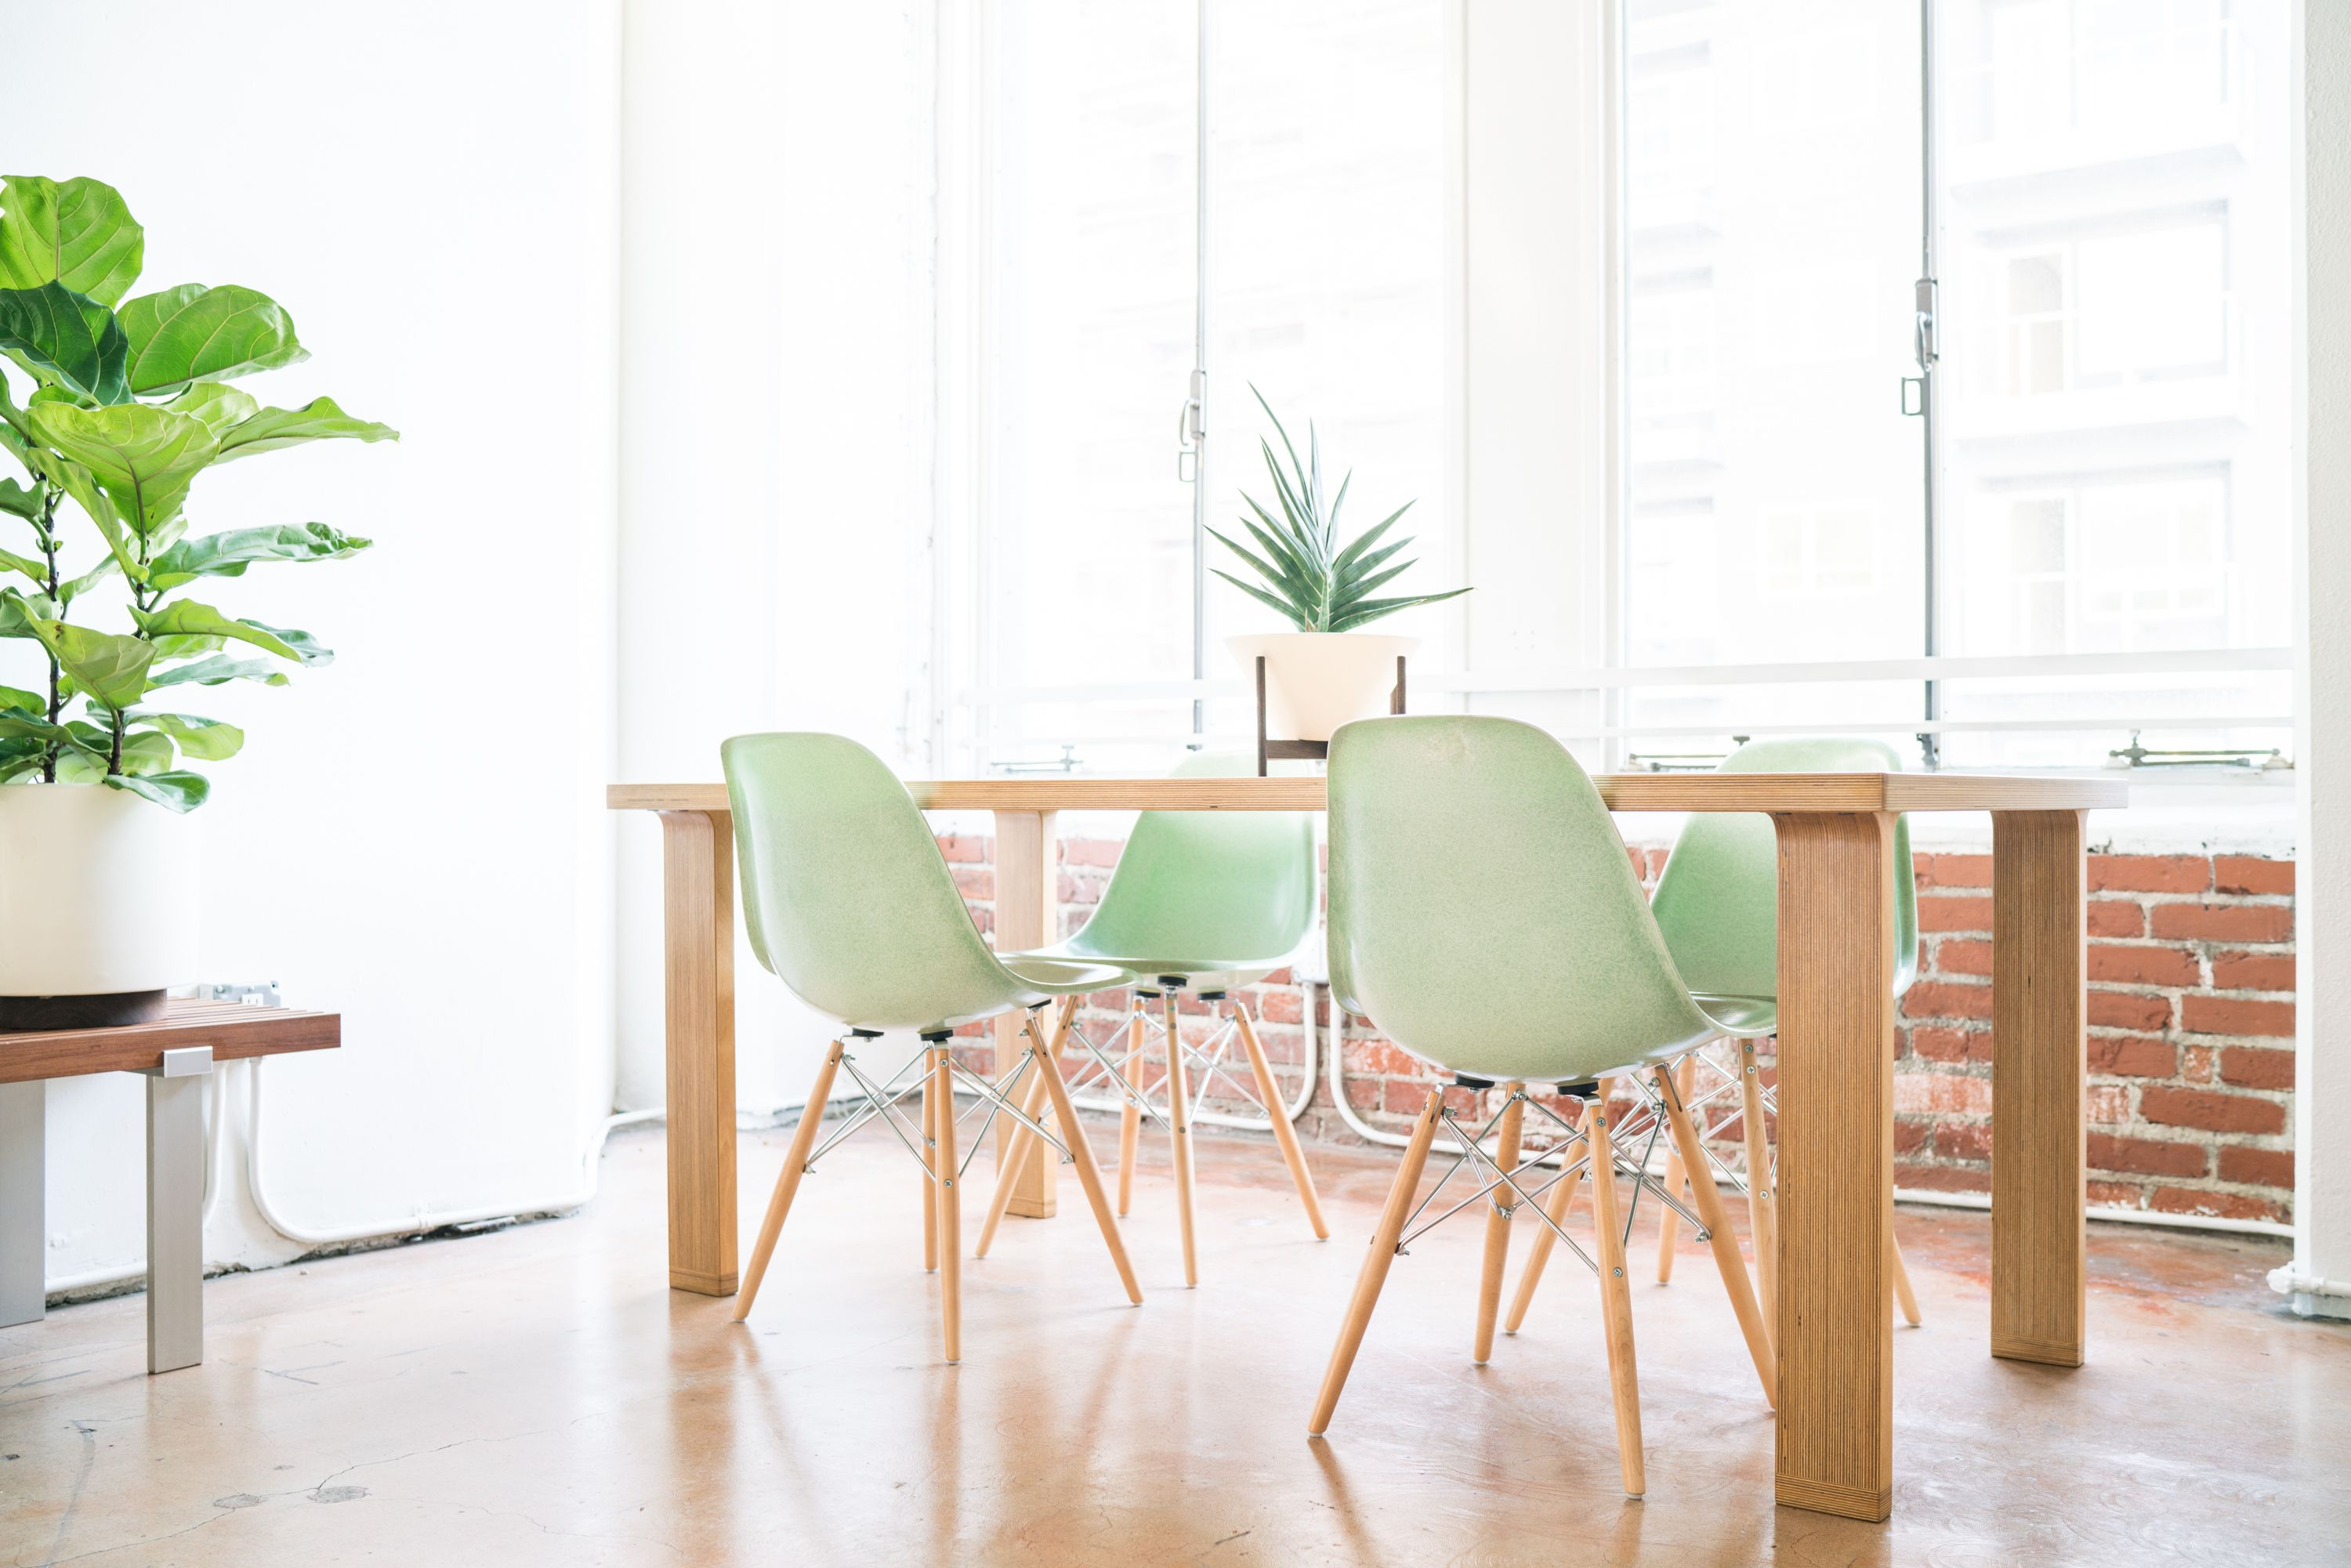 Modernica Case Study Fiberglass Shell Chairs In Jadeite And Tenon Table,  Case Study Ceramic Cylinder